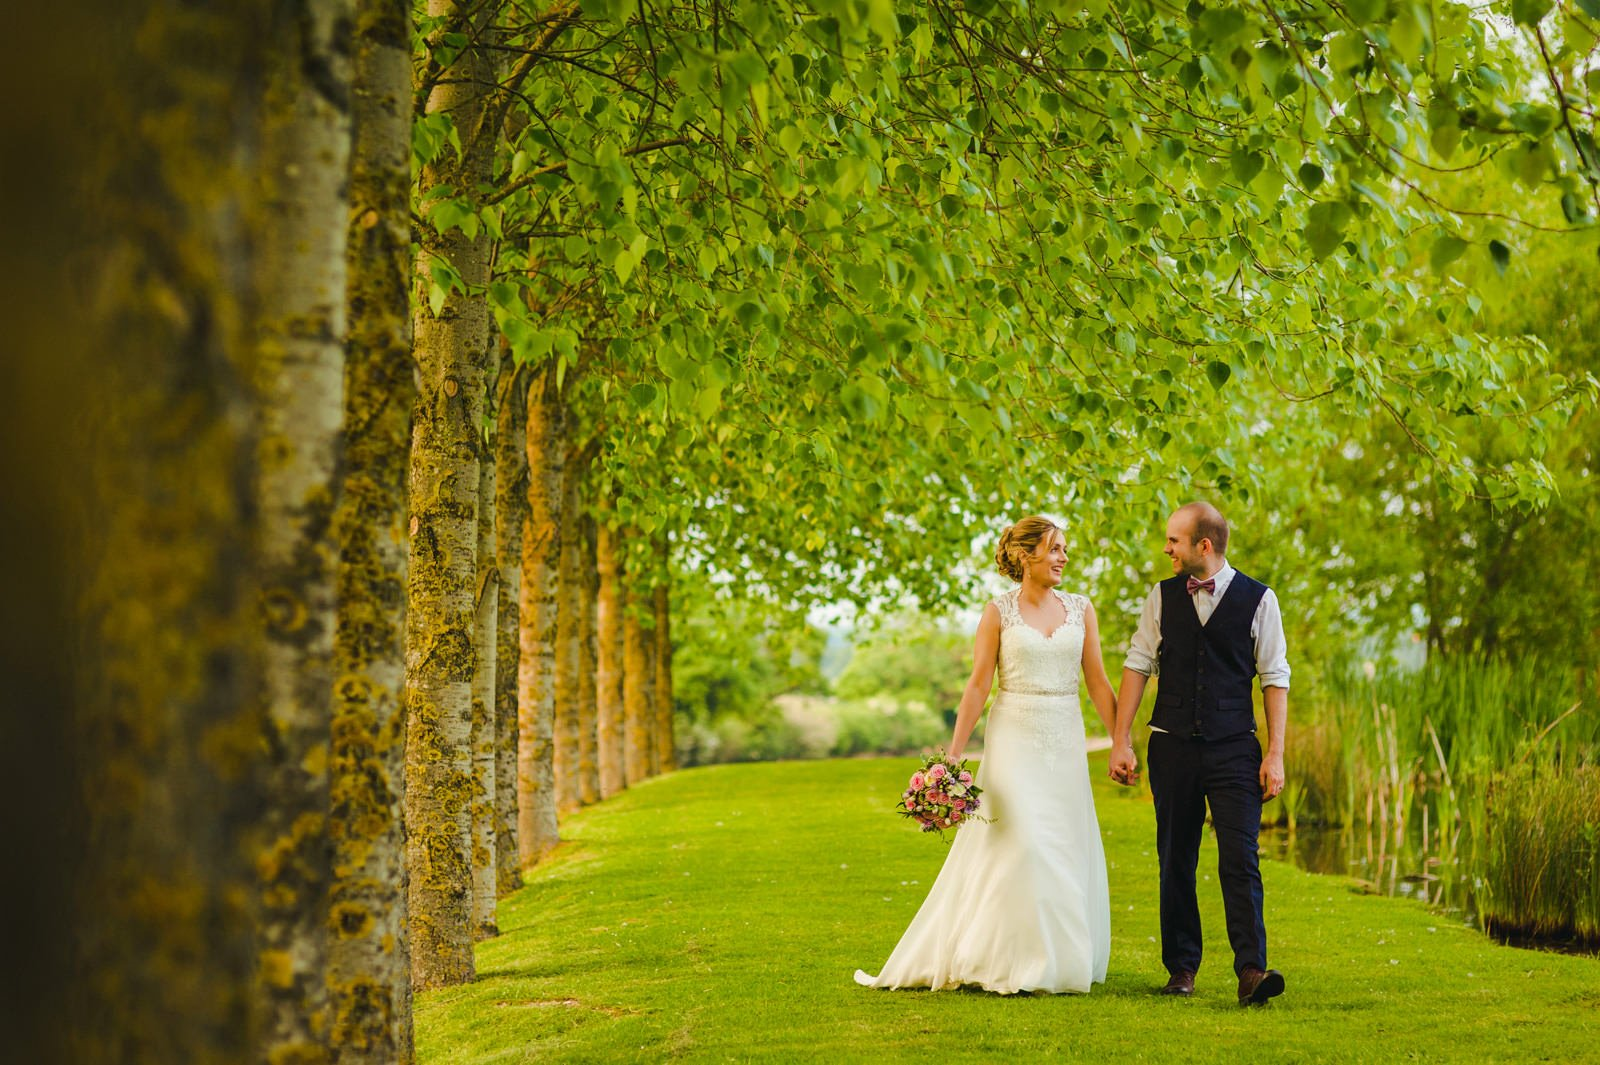 millers of netley wedding 105 - Millers Of Netley wedding, Dorrington, Shrewsbury | Emma + Ben